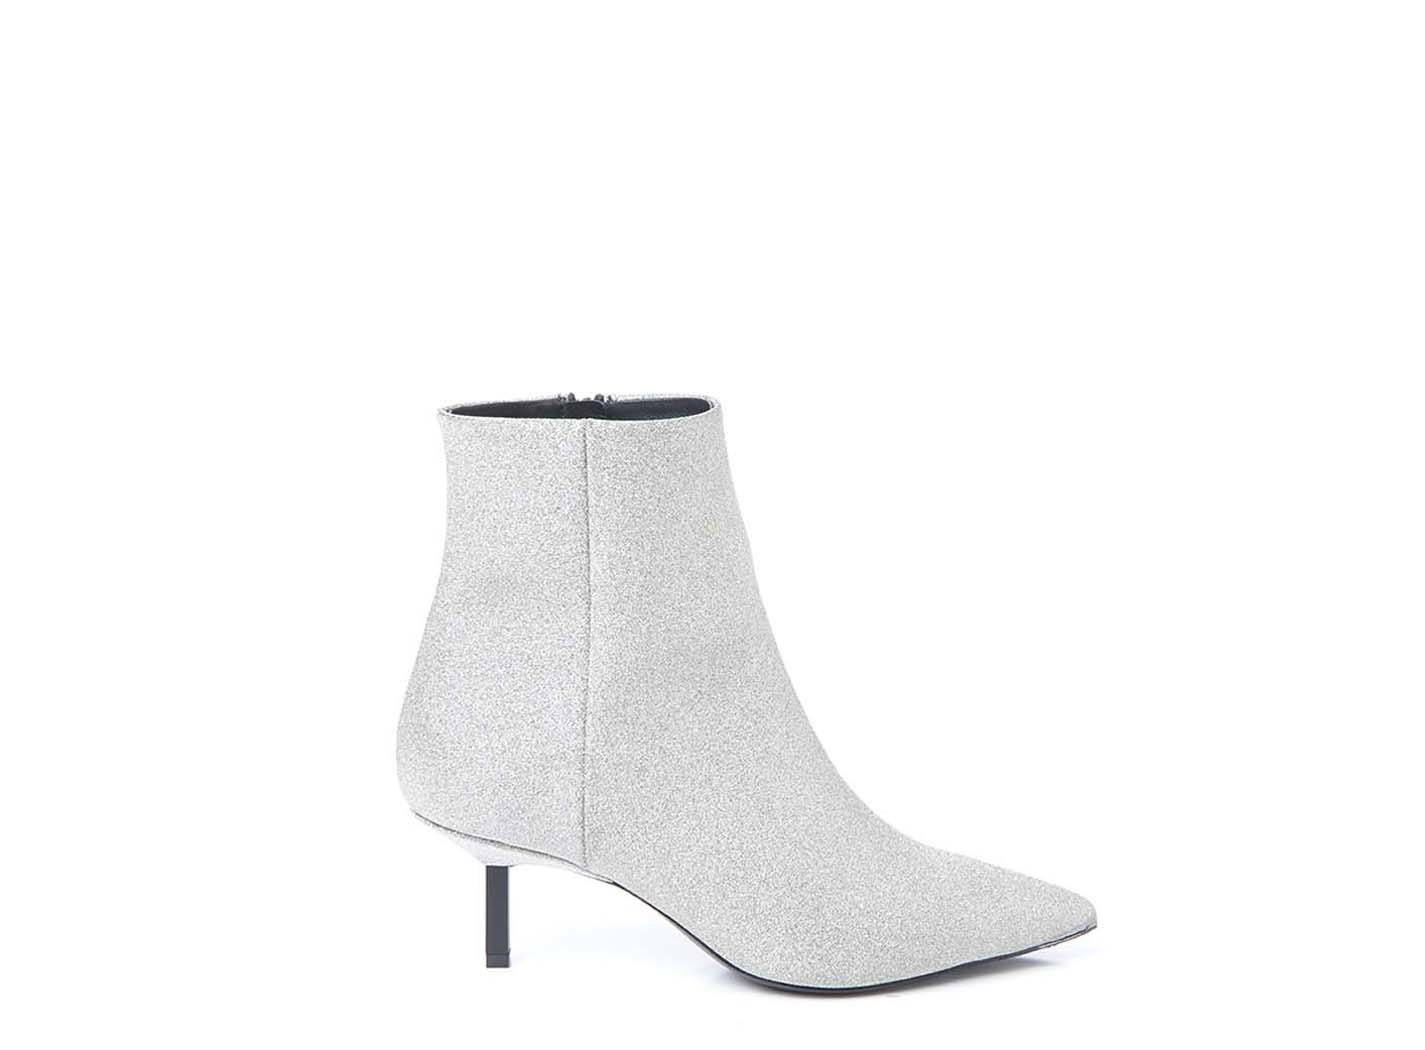 Silver glitter ankle boot with metallic